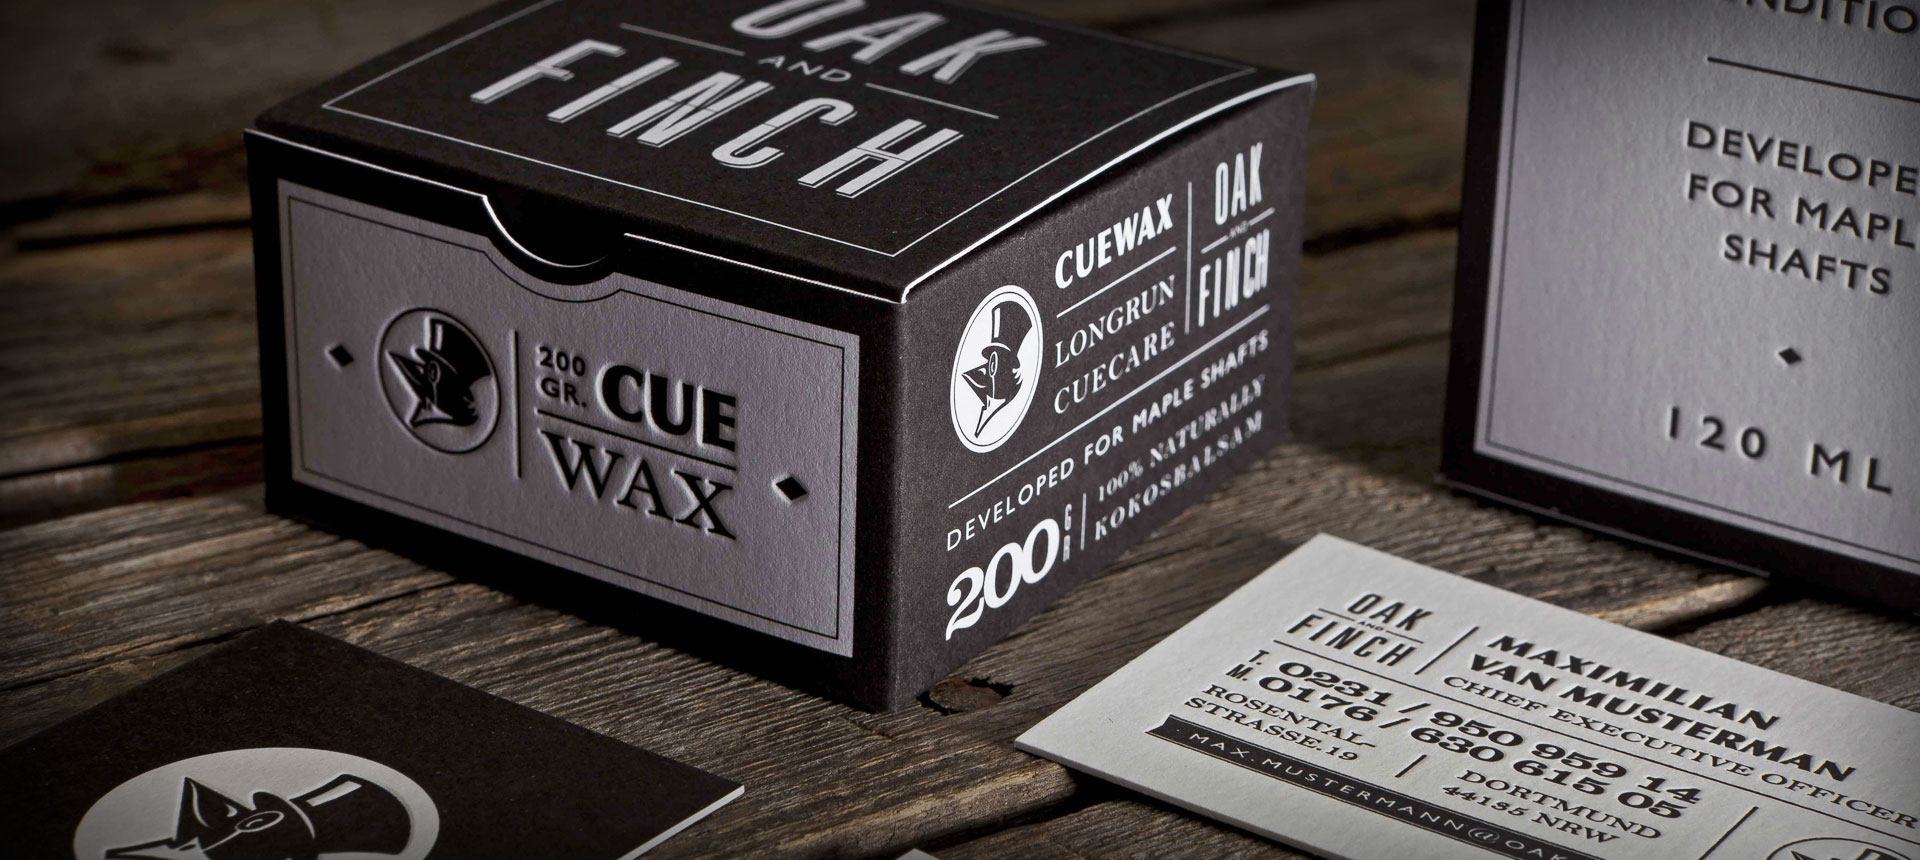 Letterpress: Packaging Oak 'n' Finch